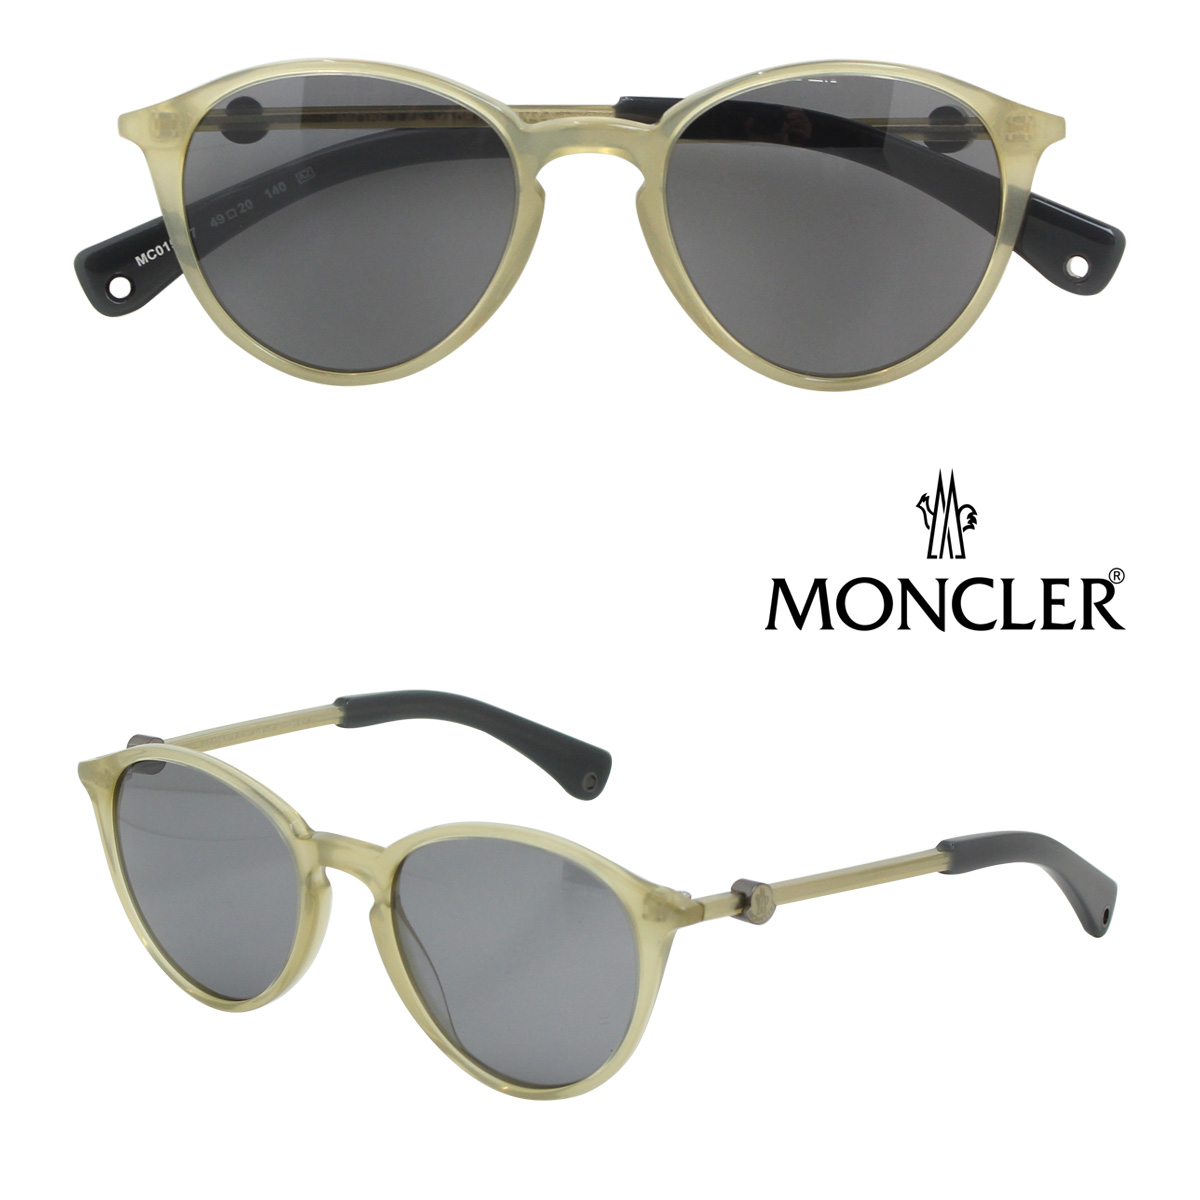 19ddfee2127 Sugar Online Shop  MONCLER MONCLER Sunglasses made in Italy men s ladies